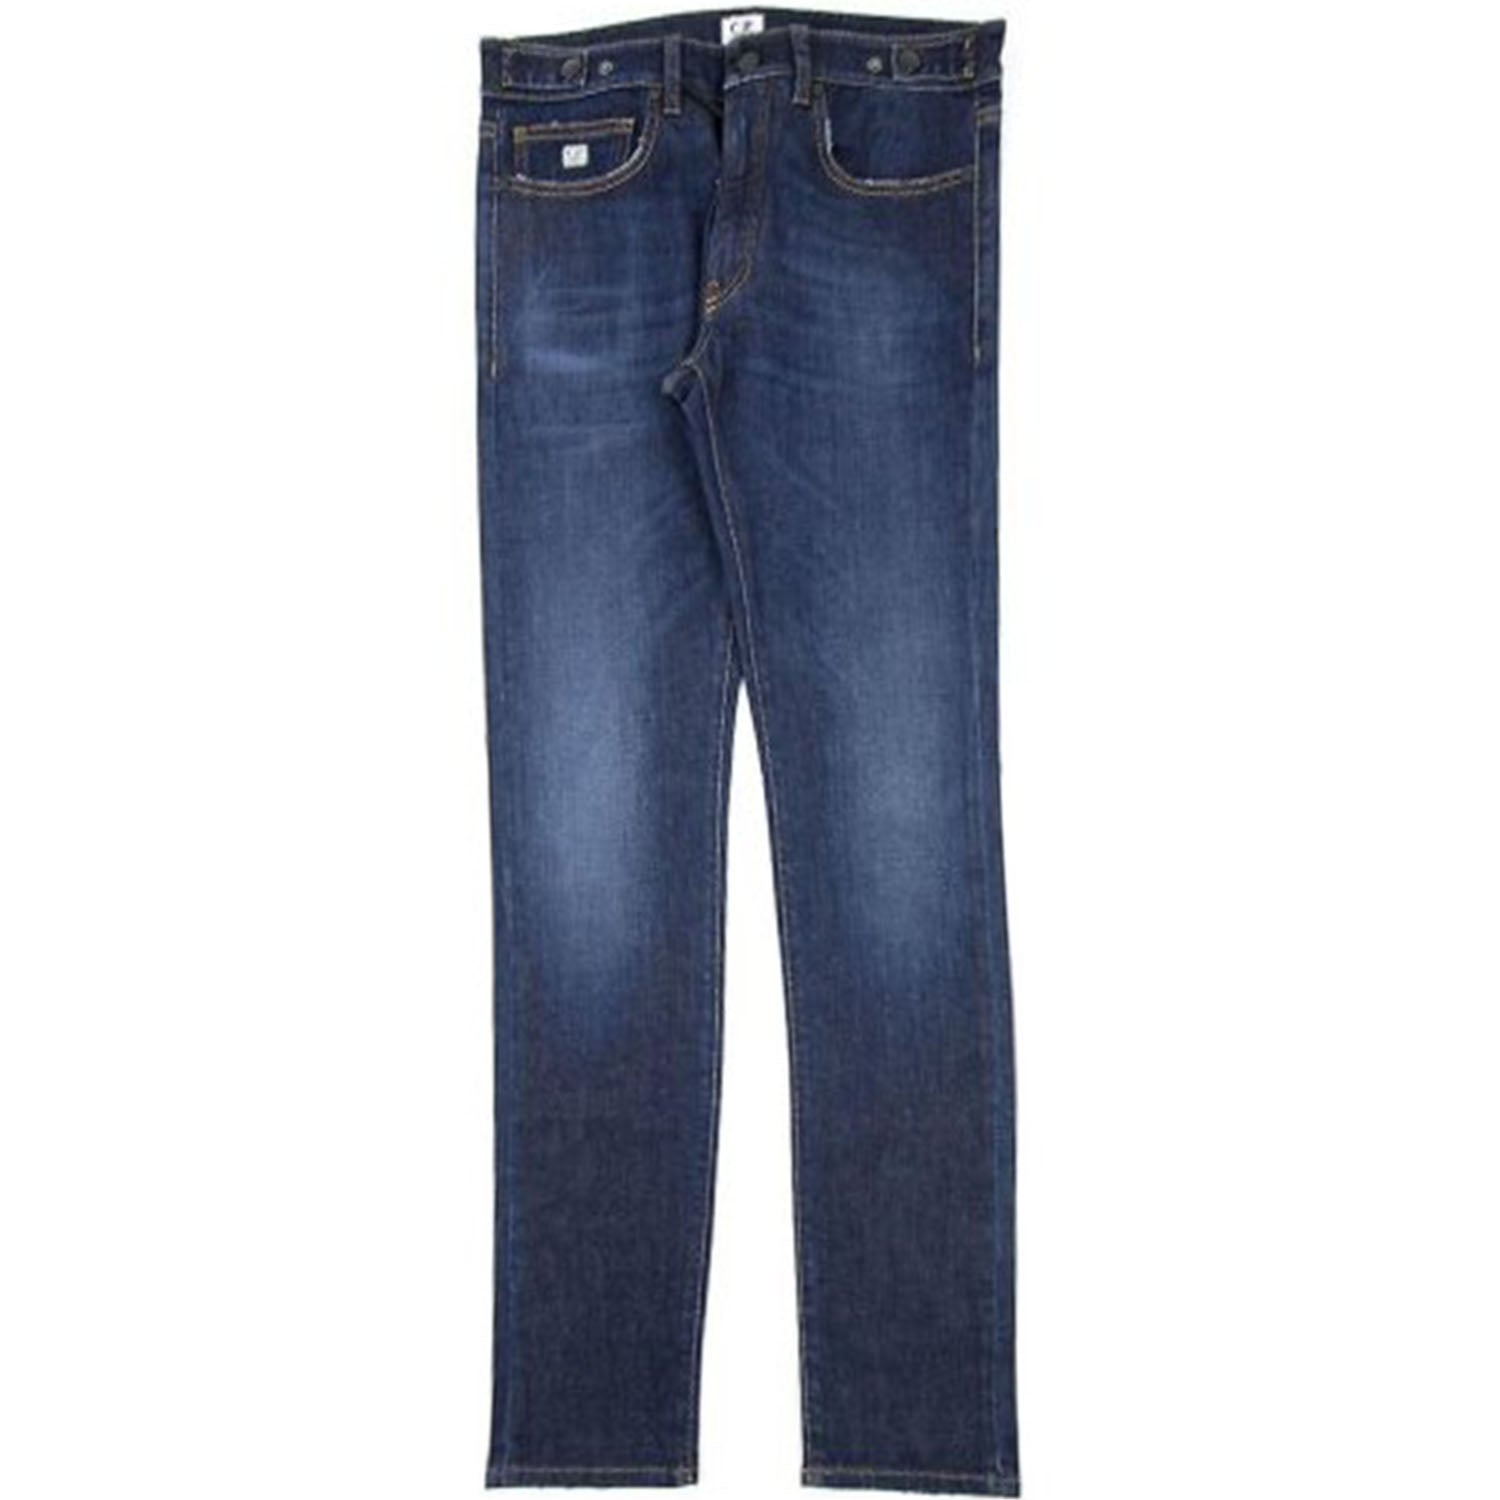 CP Company Blue Wash Slim Fit Jeans